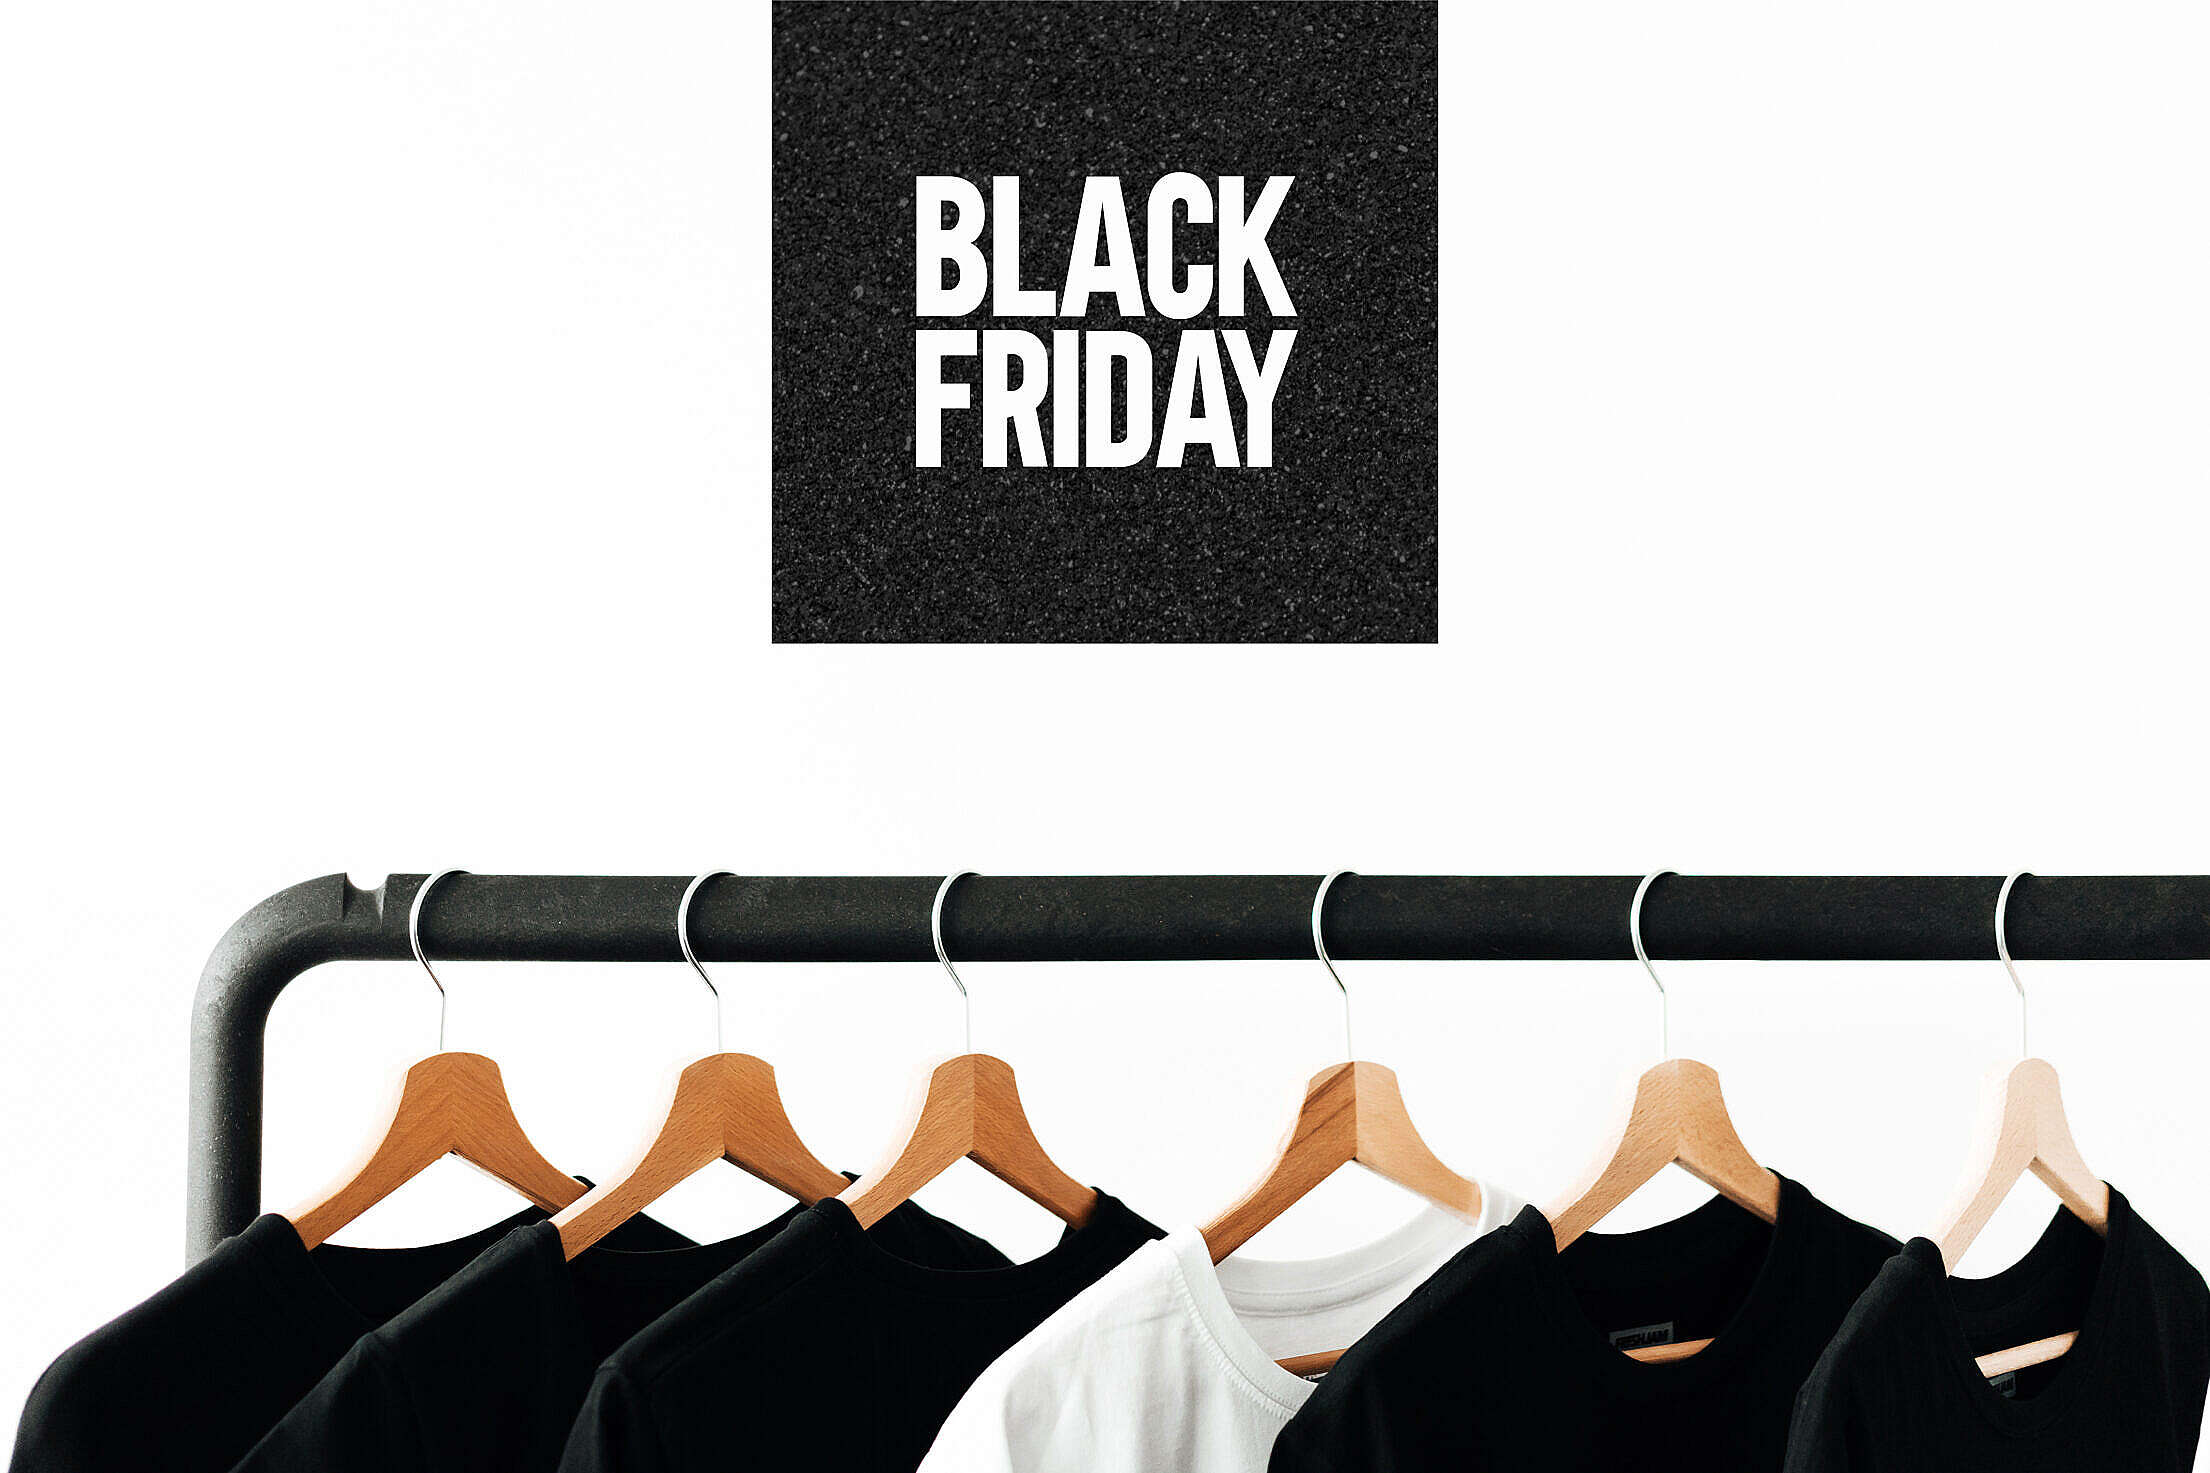 Black Friday in Fashion Business Free Stock Photo